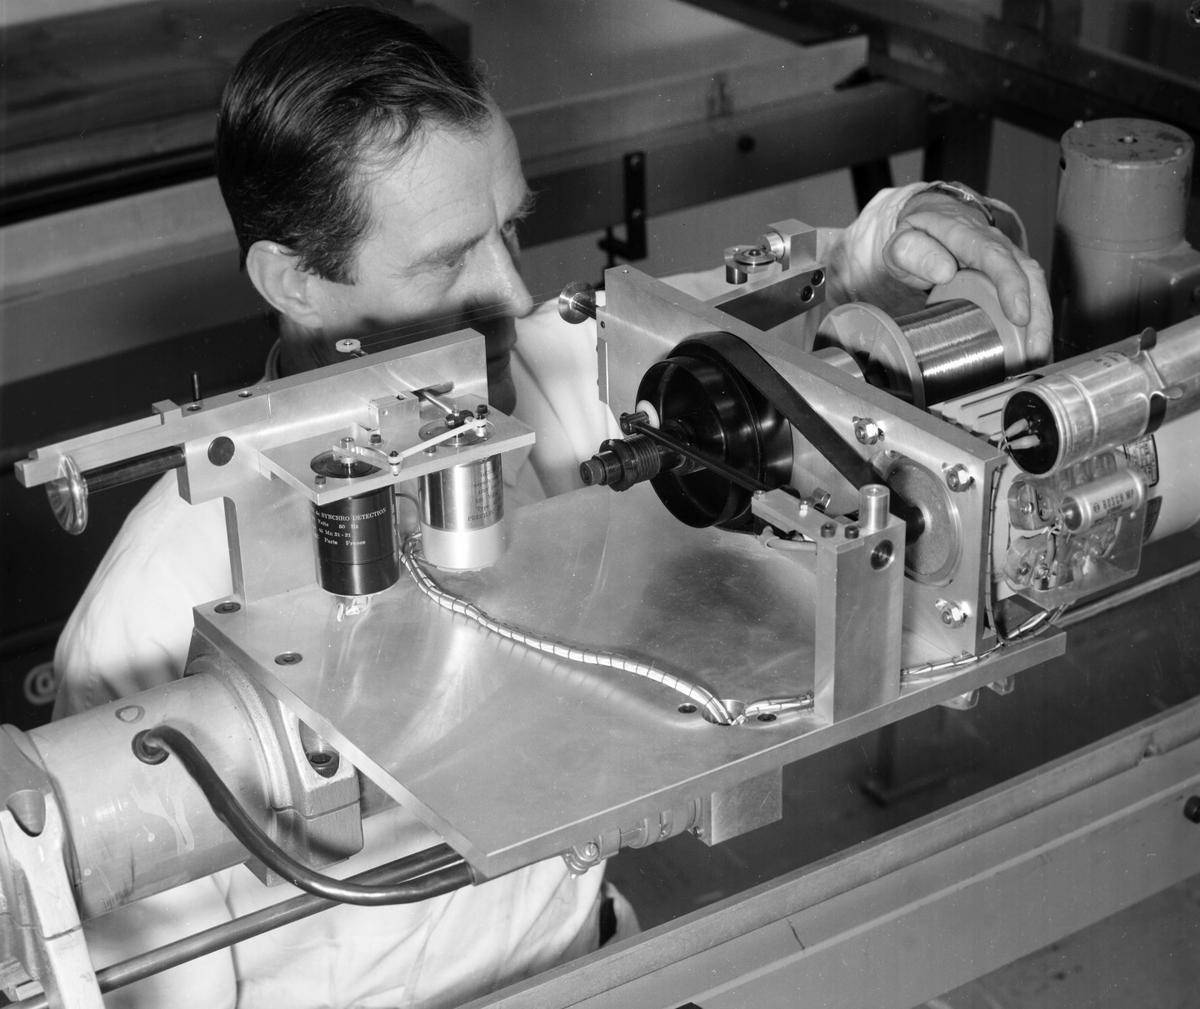 CERN is currently digitizing over 50 years of old black and white photographs, but researchers aren't sure what some photos depict (Photo: CERN)